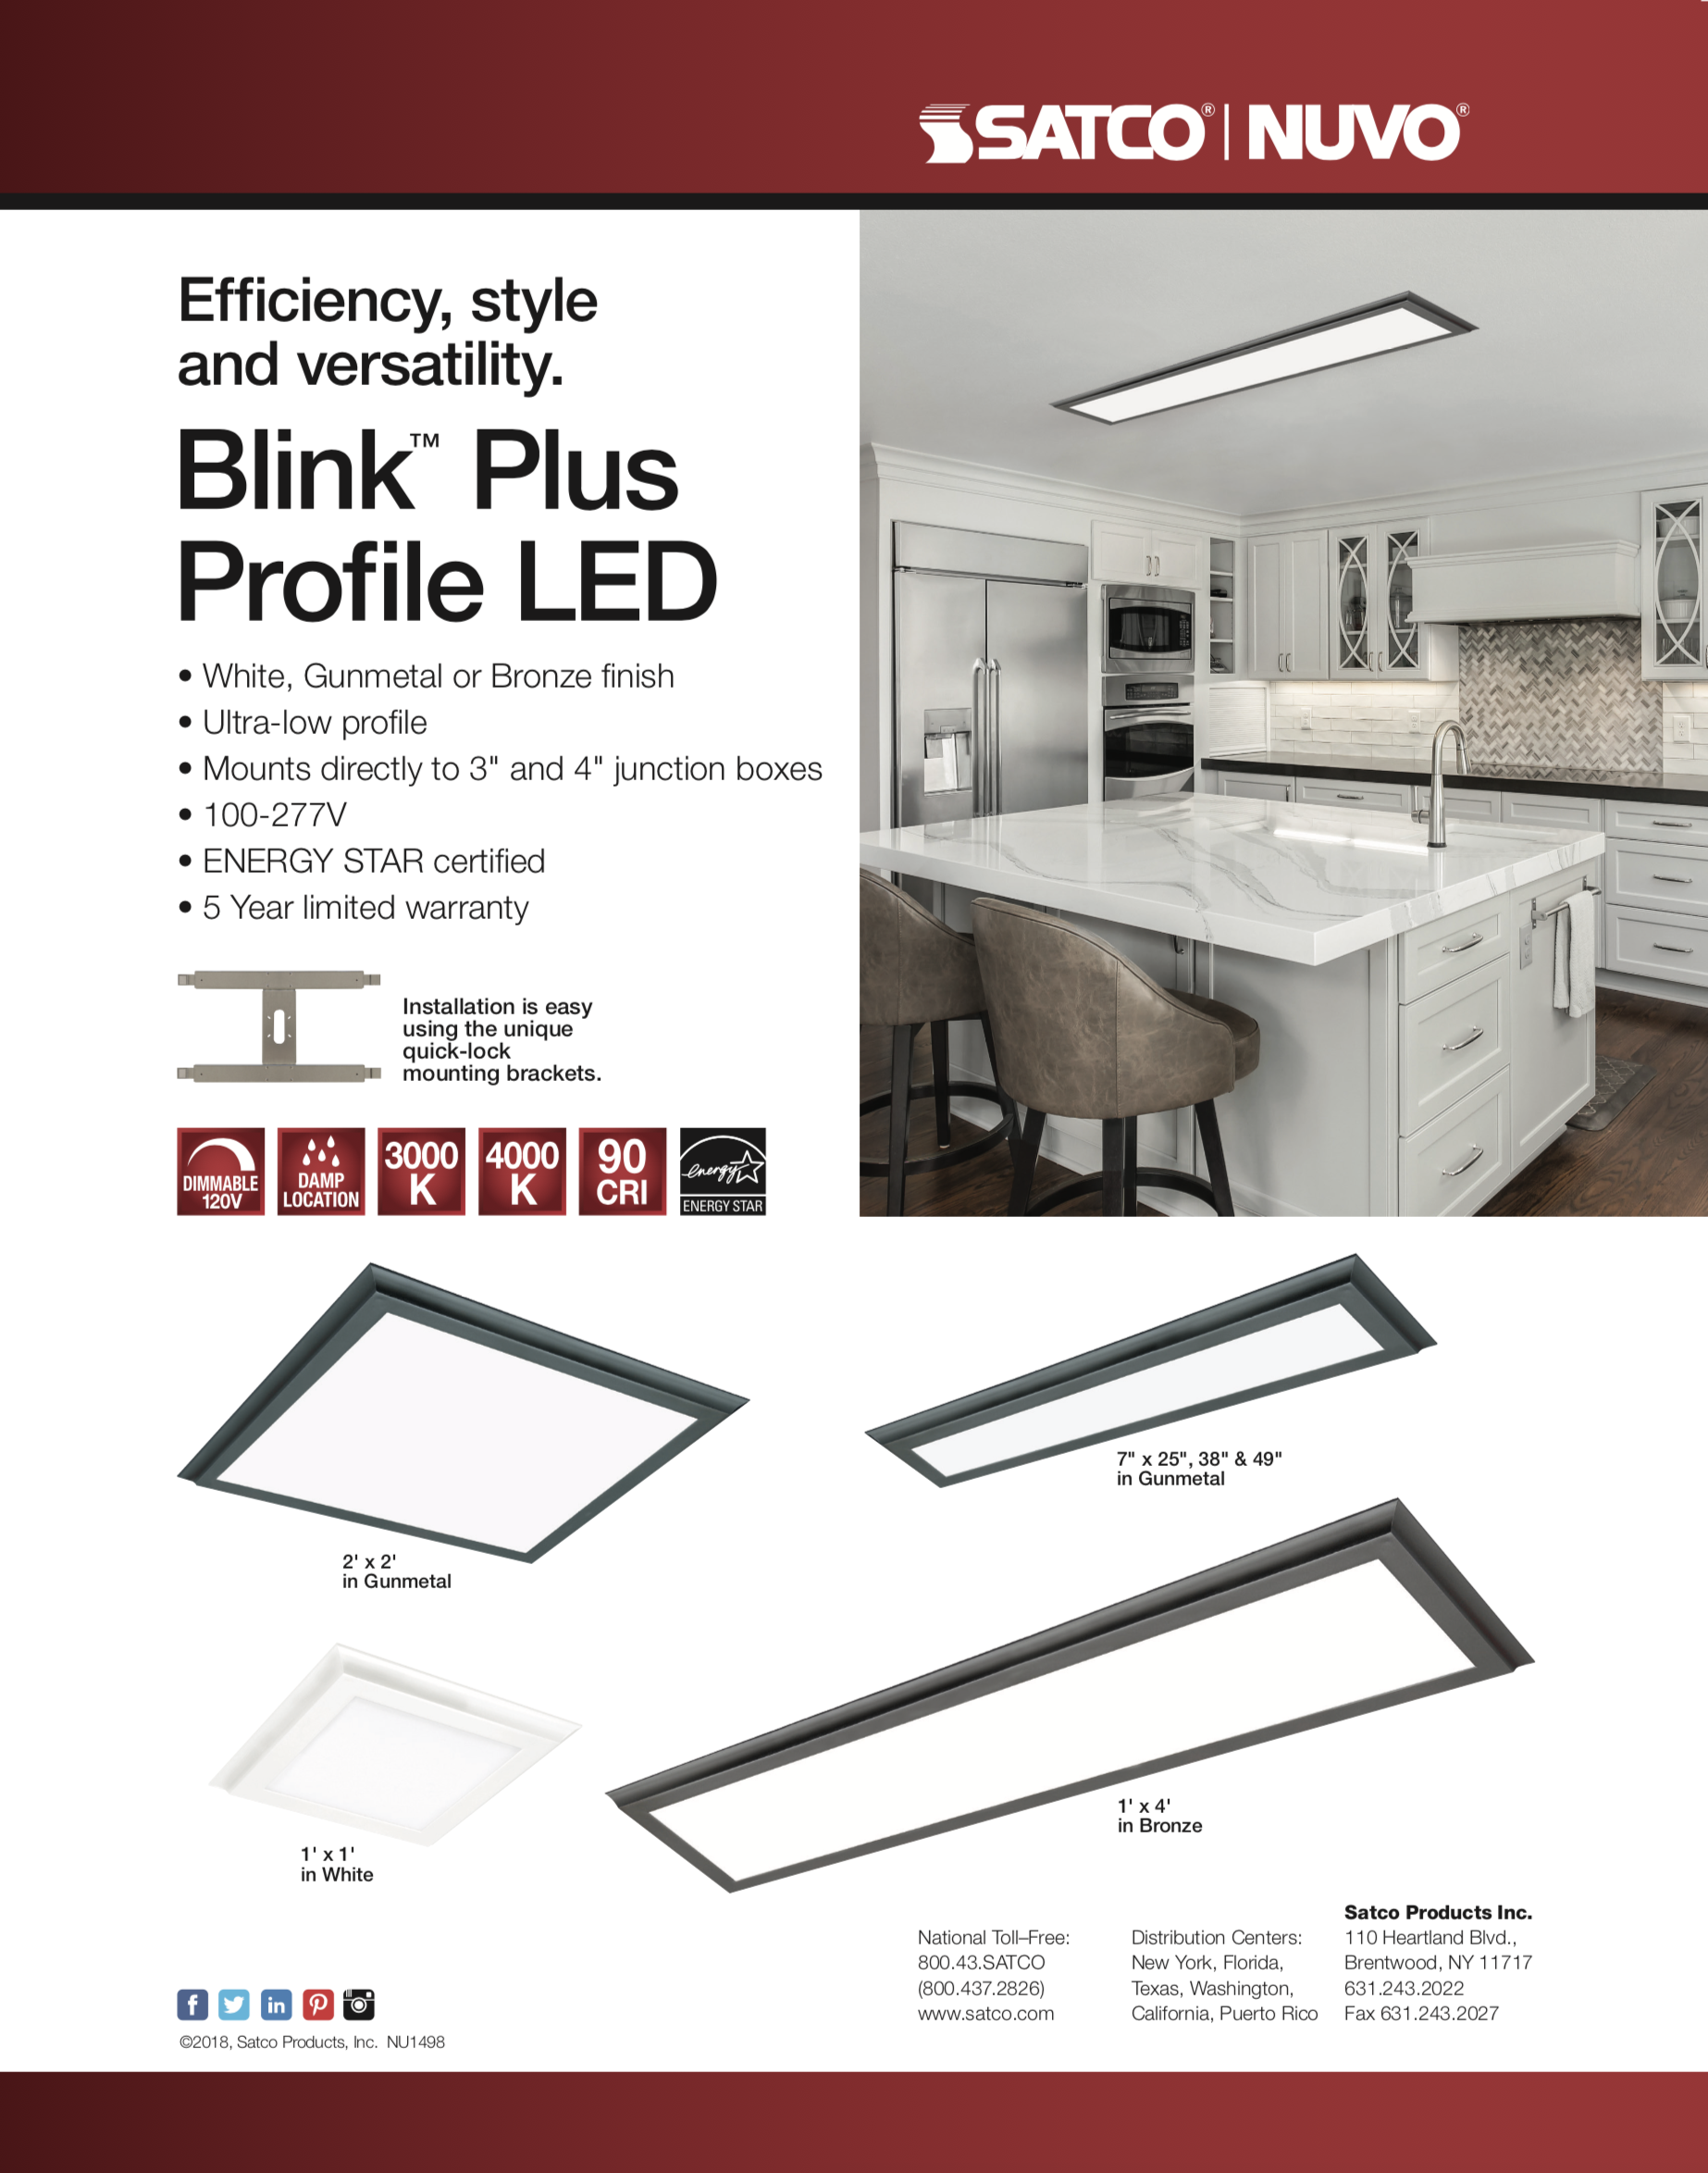 Blink by SATCO LED Light panel in New York and New Jersey from Estrin Zirkman